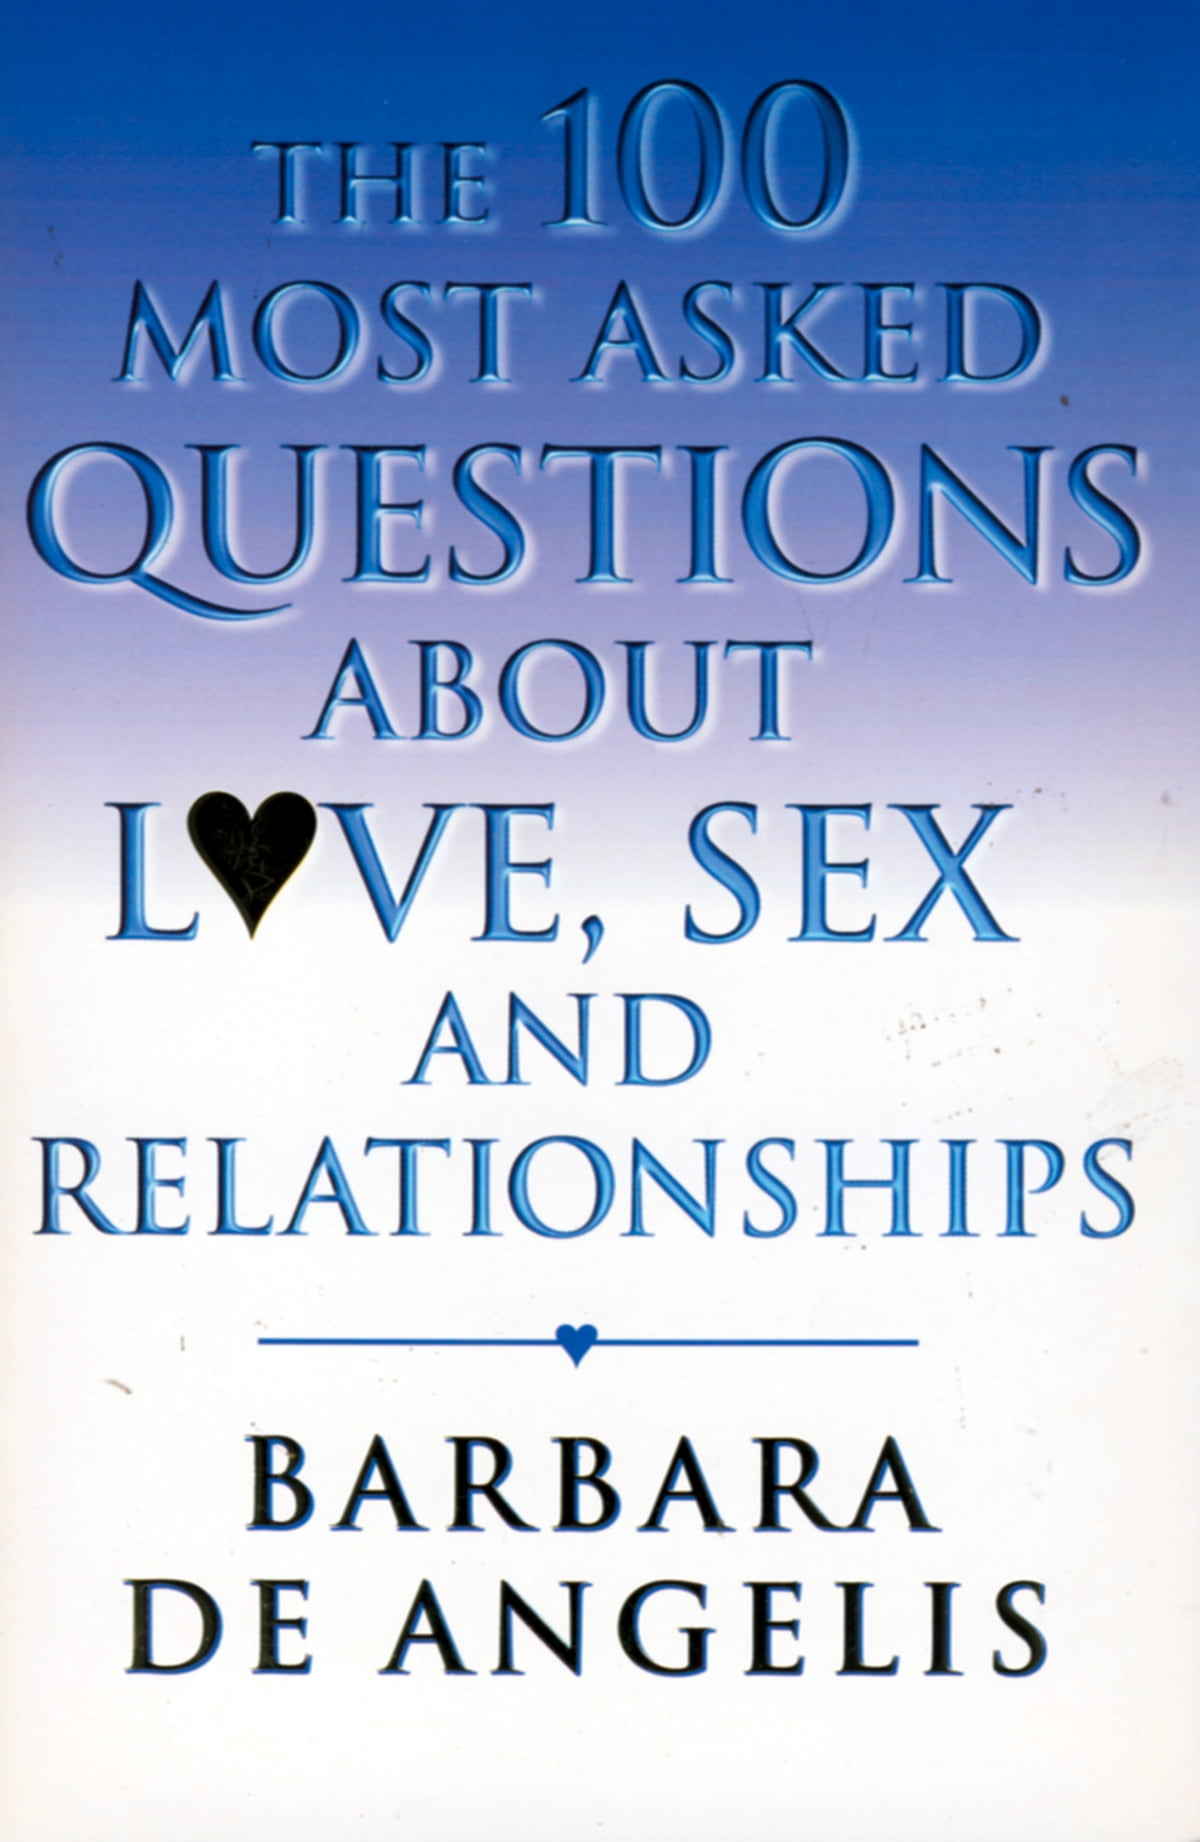 The 100 Most Asked Questions About Love, Sex and Relationships ebook by  Barbara De Angelis - Rakuten Kobo